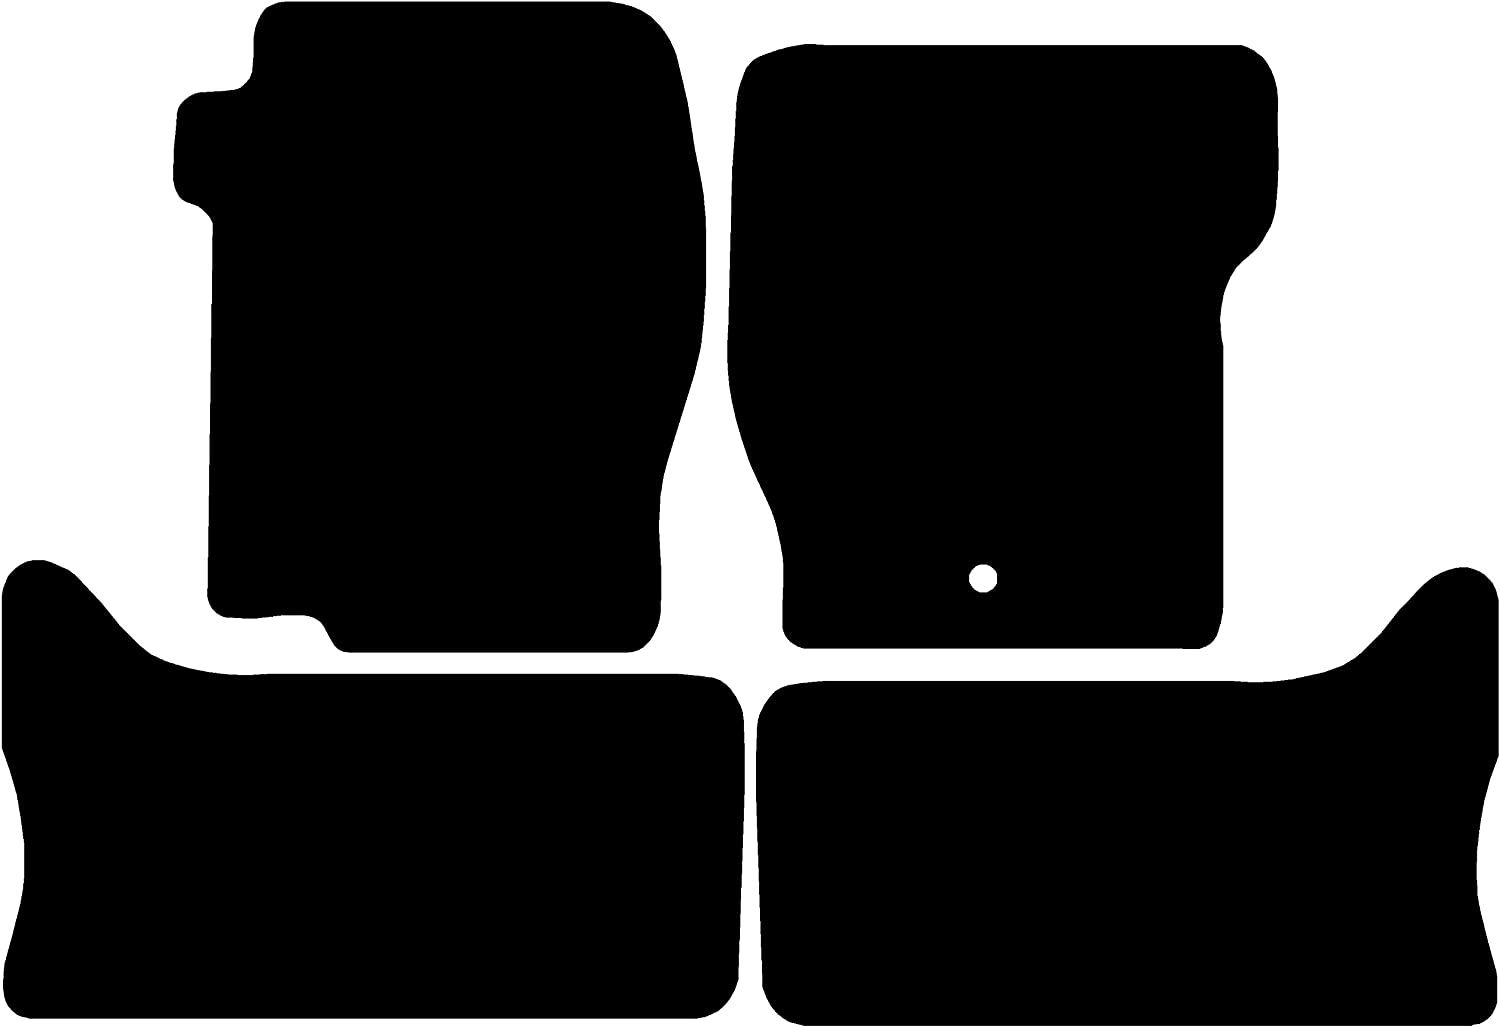 1999-2004 Grey with Black Trim Premium Connected Essentials CEM650 Car Mat Set for Discovery